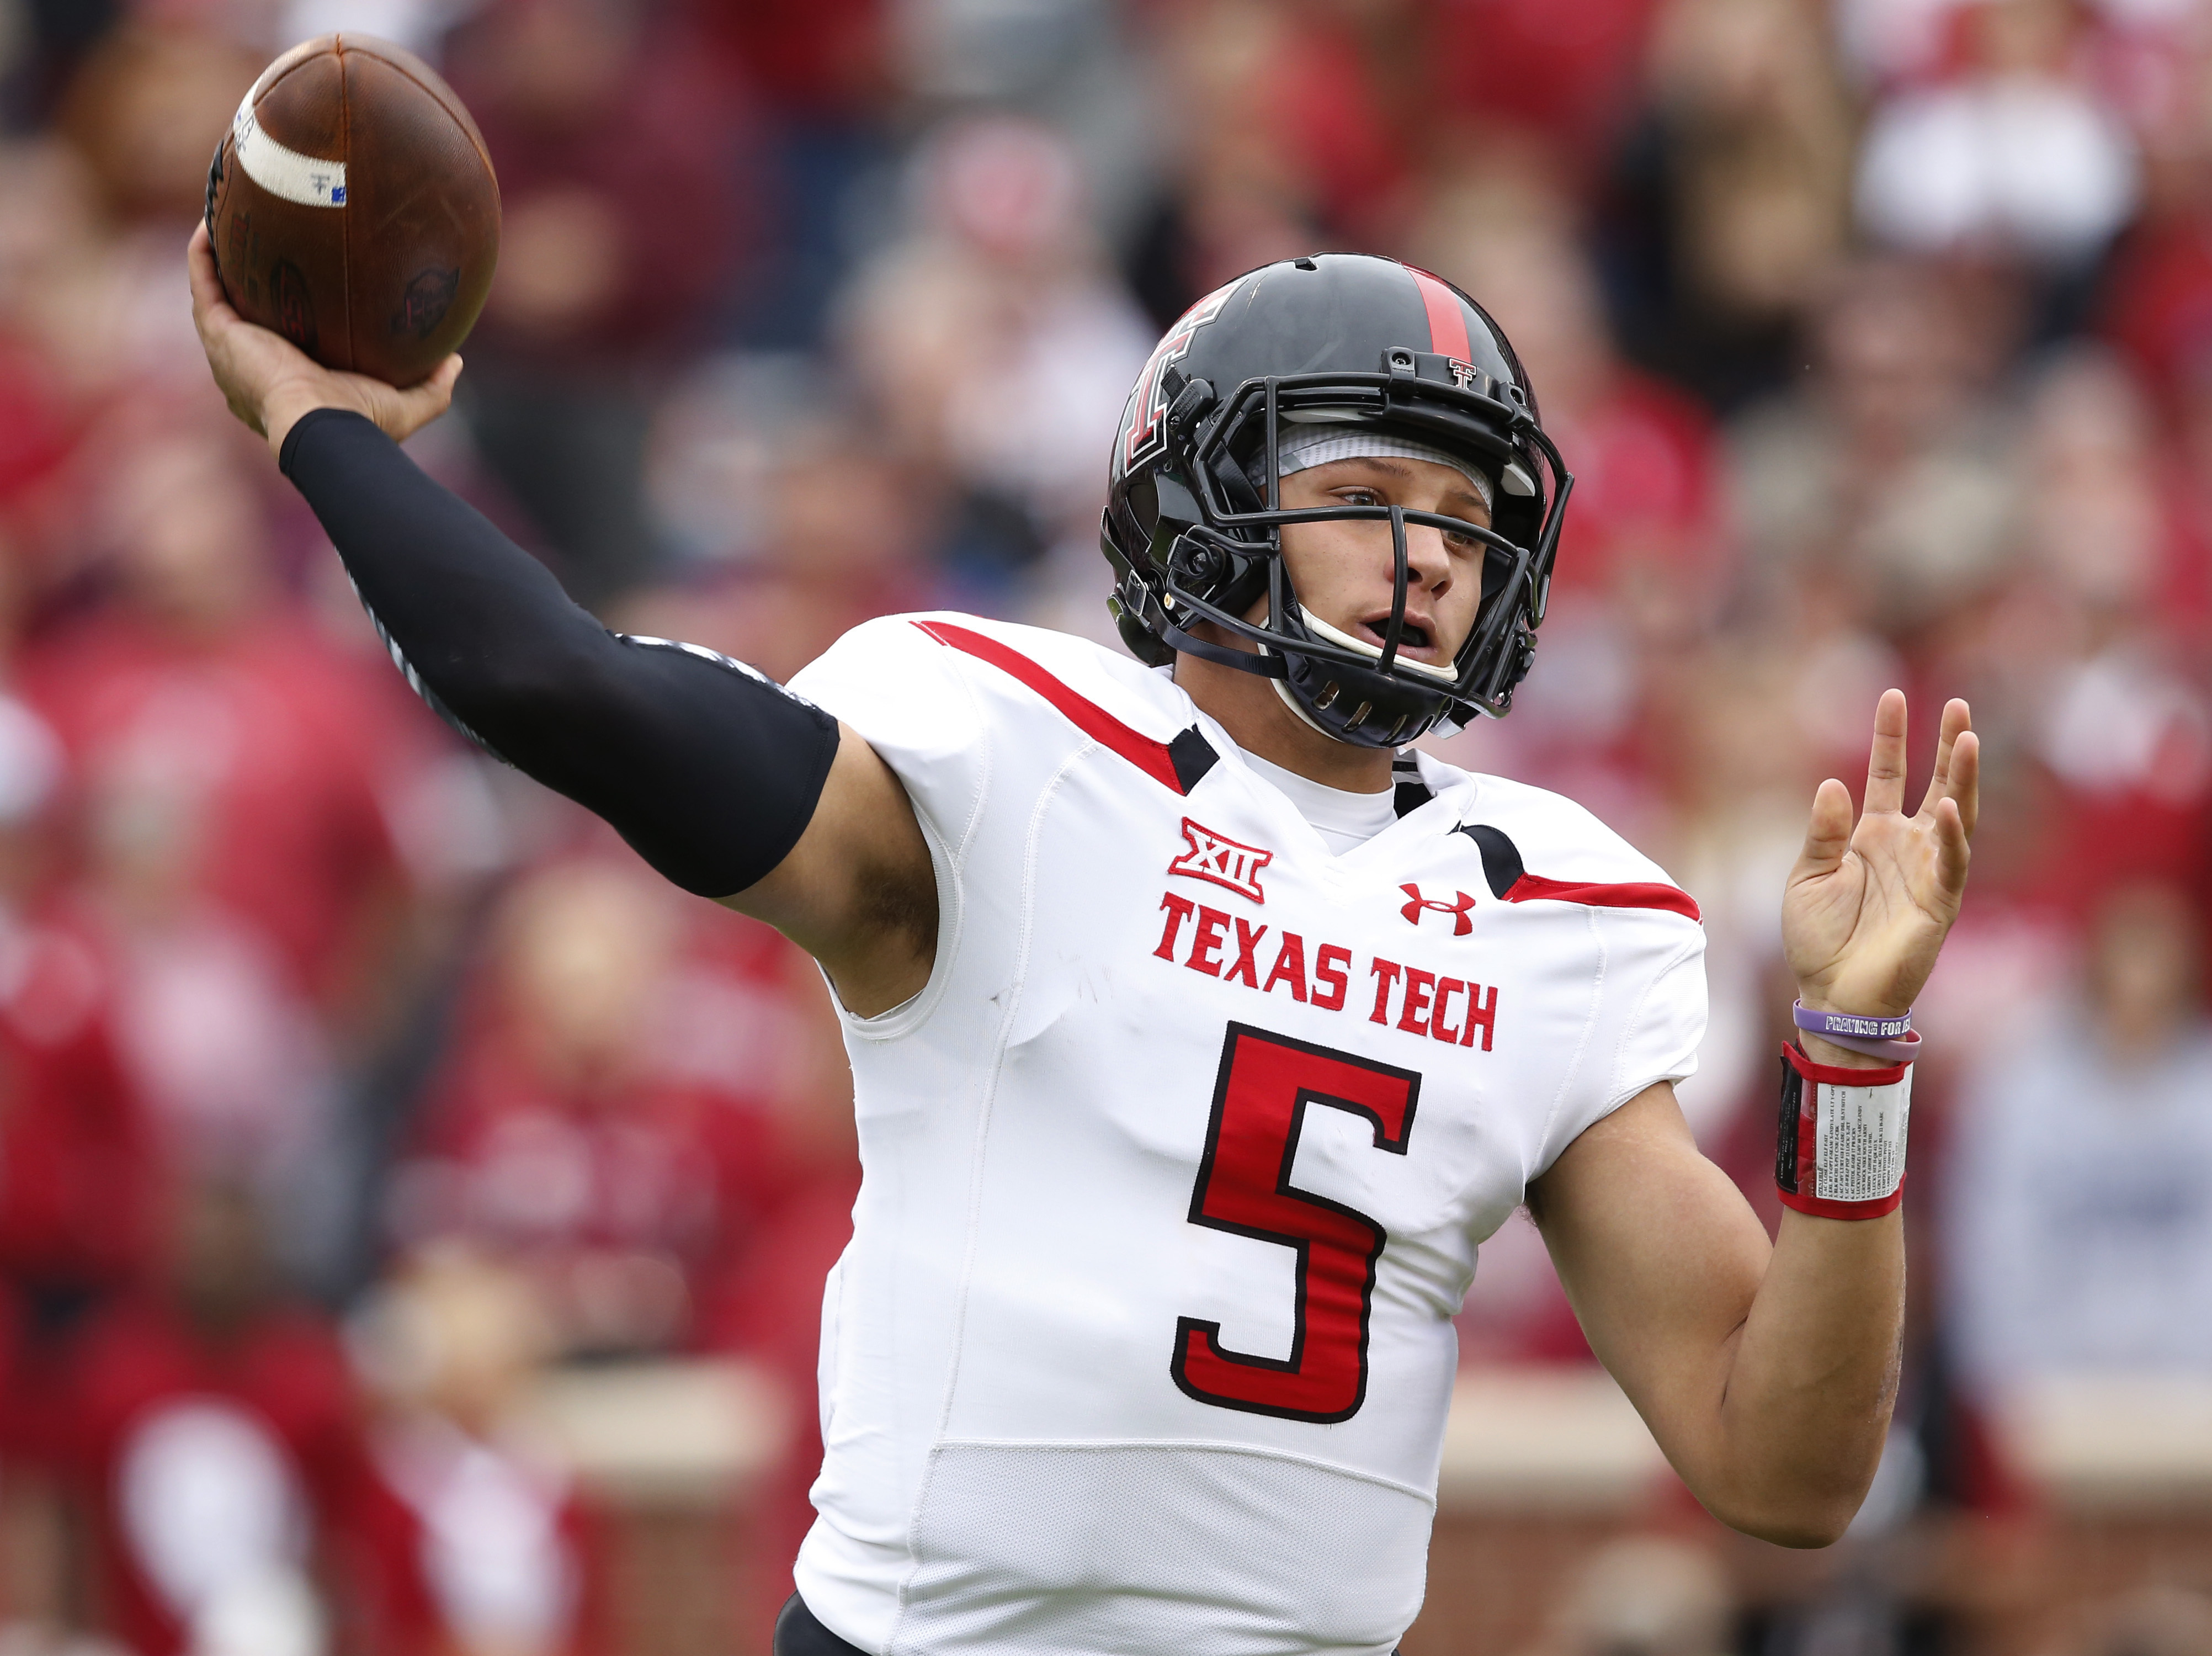 FILE - In this Oct. 24, 2015, file photo, Texas Tech quarterback Patrick Mahomes (5) passes in the first quarter of an NCAA college football game against Oklahoma in Norman, Okla. Texas Techs success this year rests on the shoulders of its junior QB. Last